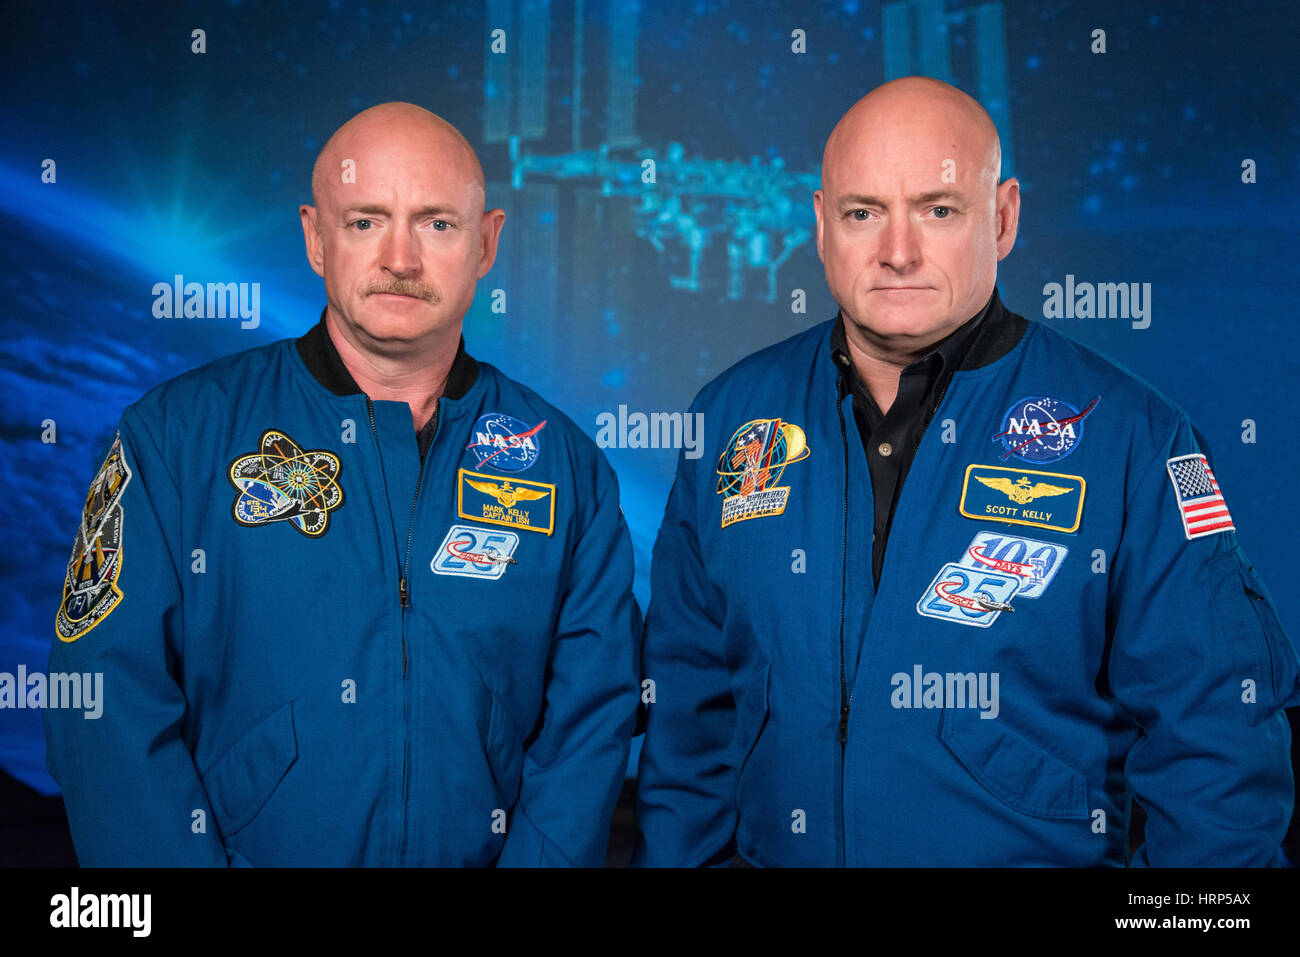 NASA Expedition 45/46 Commander, Astronaut Scott Kelly along with his brother, former Astronaut Mark Kelly at the - Stock Image